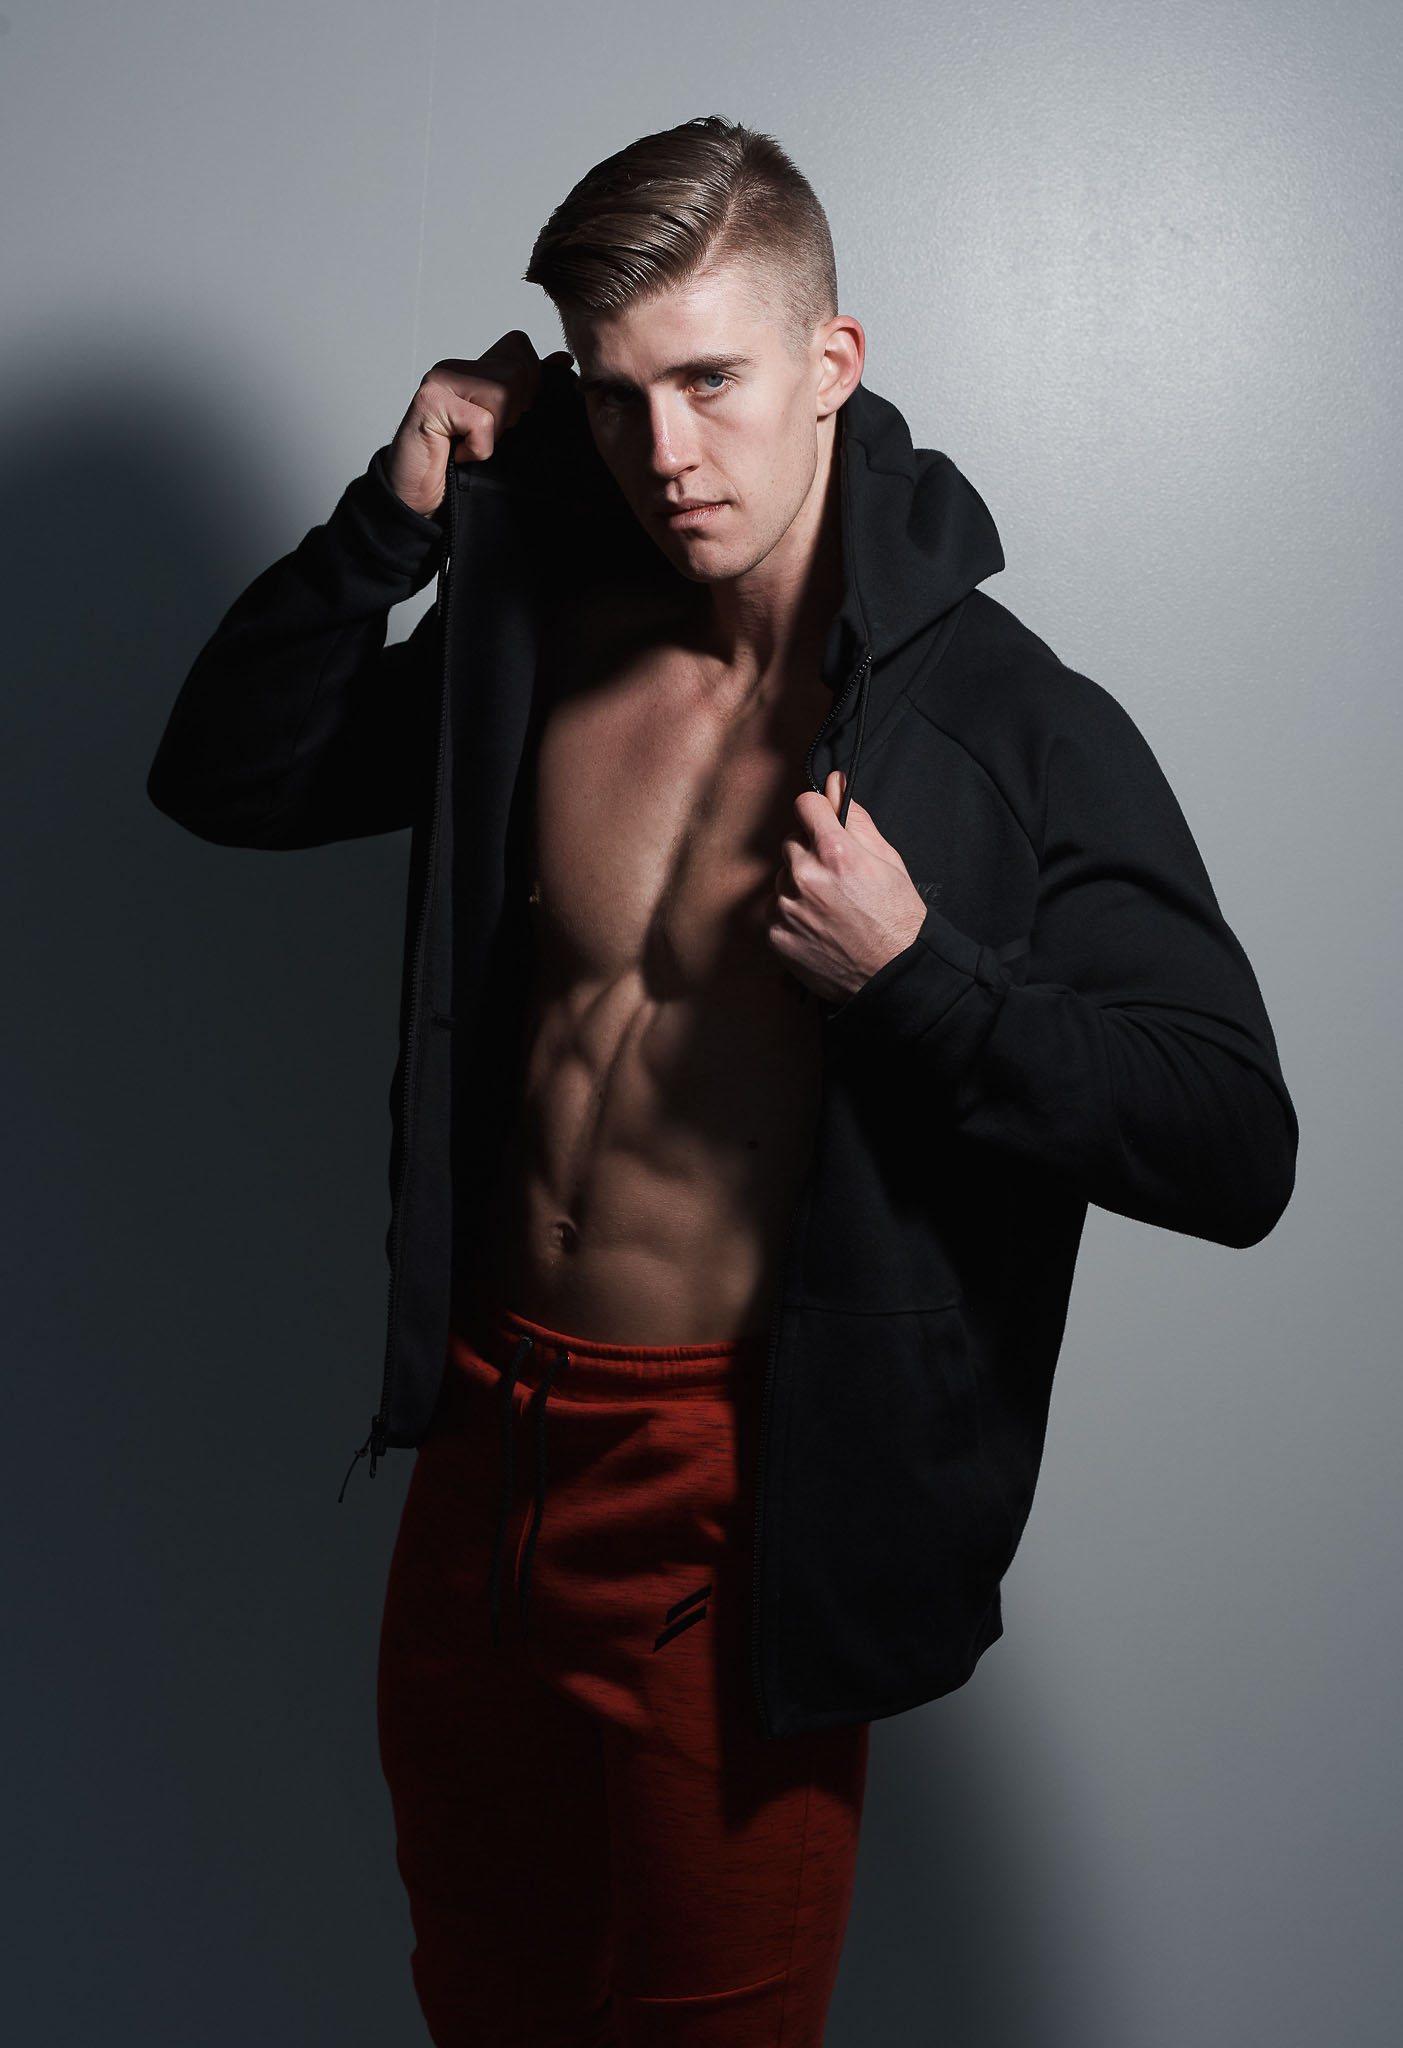 Callum Melbourne male fitness model